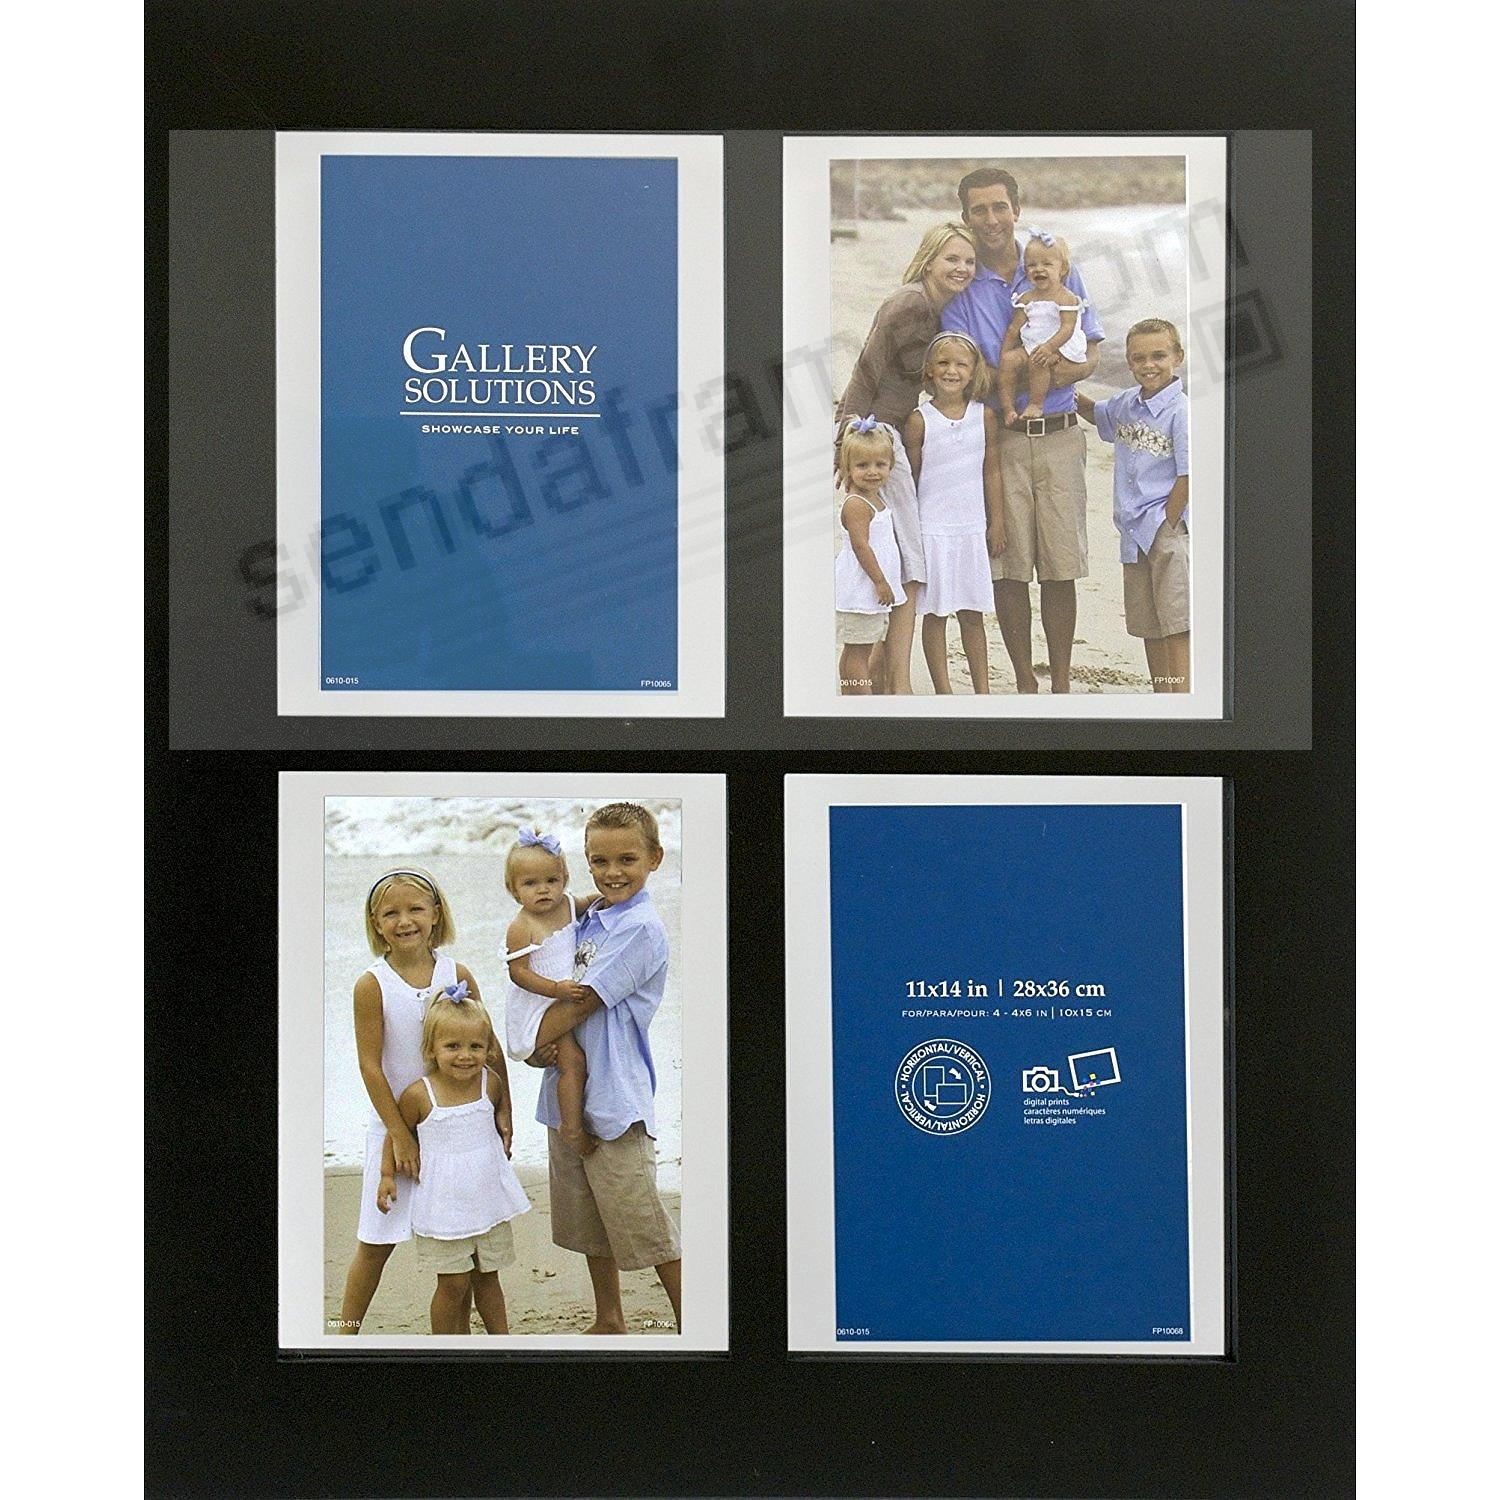 BLACK Windowpane Collage displays (4) prints 4x6 by Gallery Solutions®